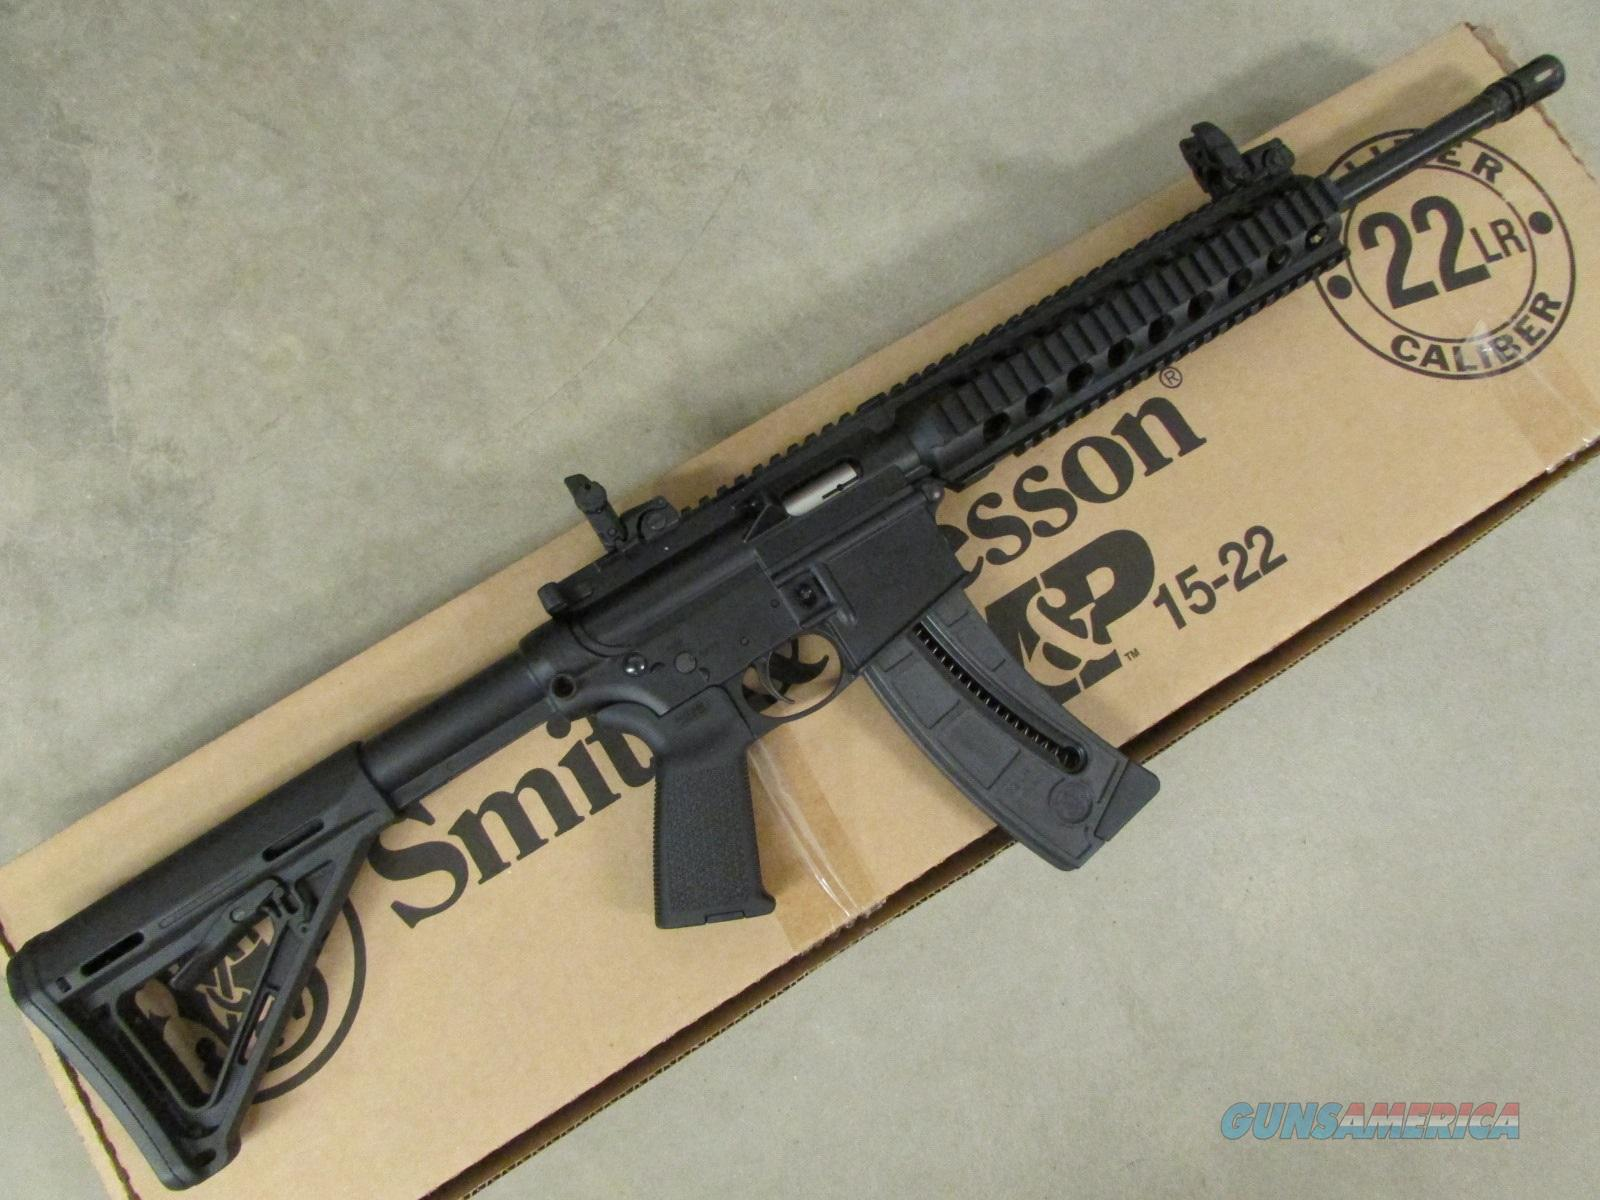 Smith & Wesson M&P15-22 MOE Sights Stock & Grip .22 LR  Guns > Rifles > Smith & Wesson Rifles > M&P